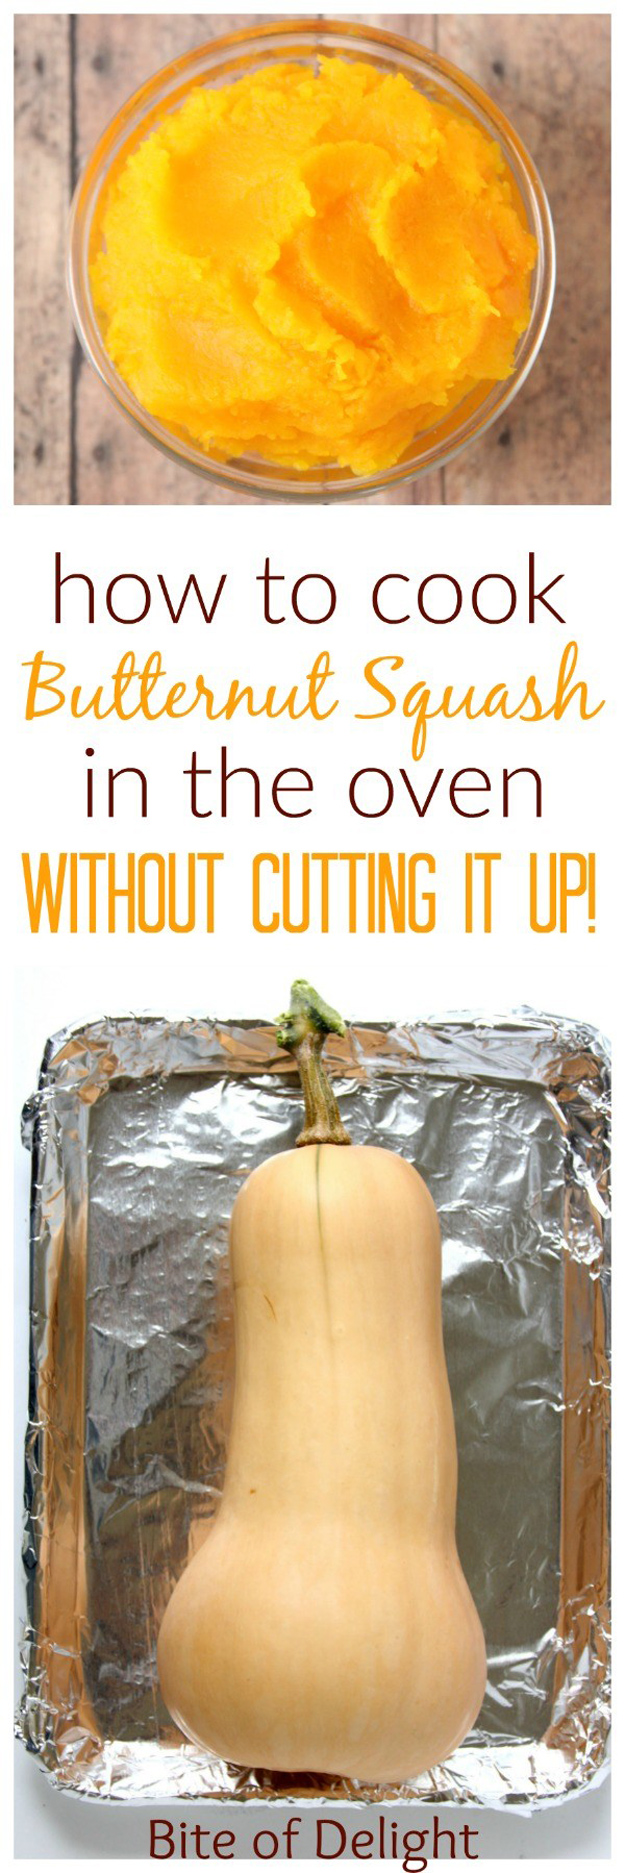 Coolest Cooking Hacks, Tips and Tricks for Easy Meal Prep, Recipe Shortcuts and Quick Ideas for Food |  Cook Butternut Squash Without Cutting It  | http://cooking-tips-diy-kitchen-hacks